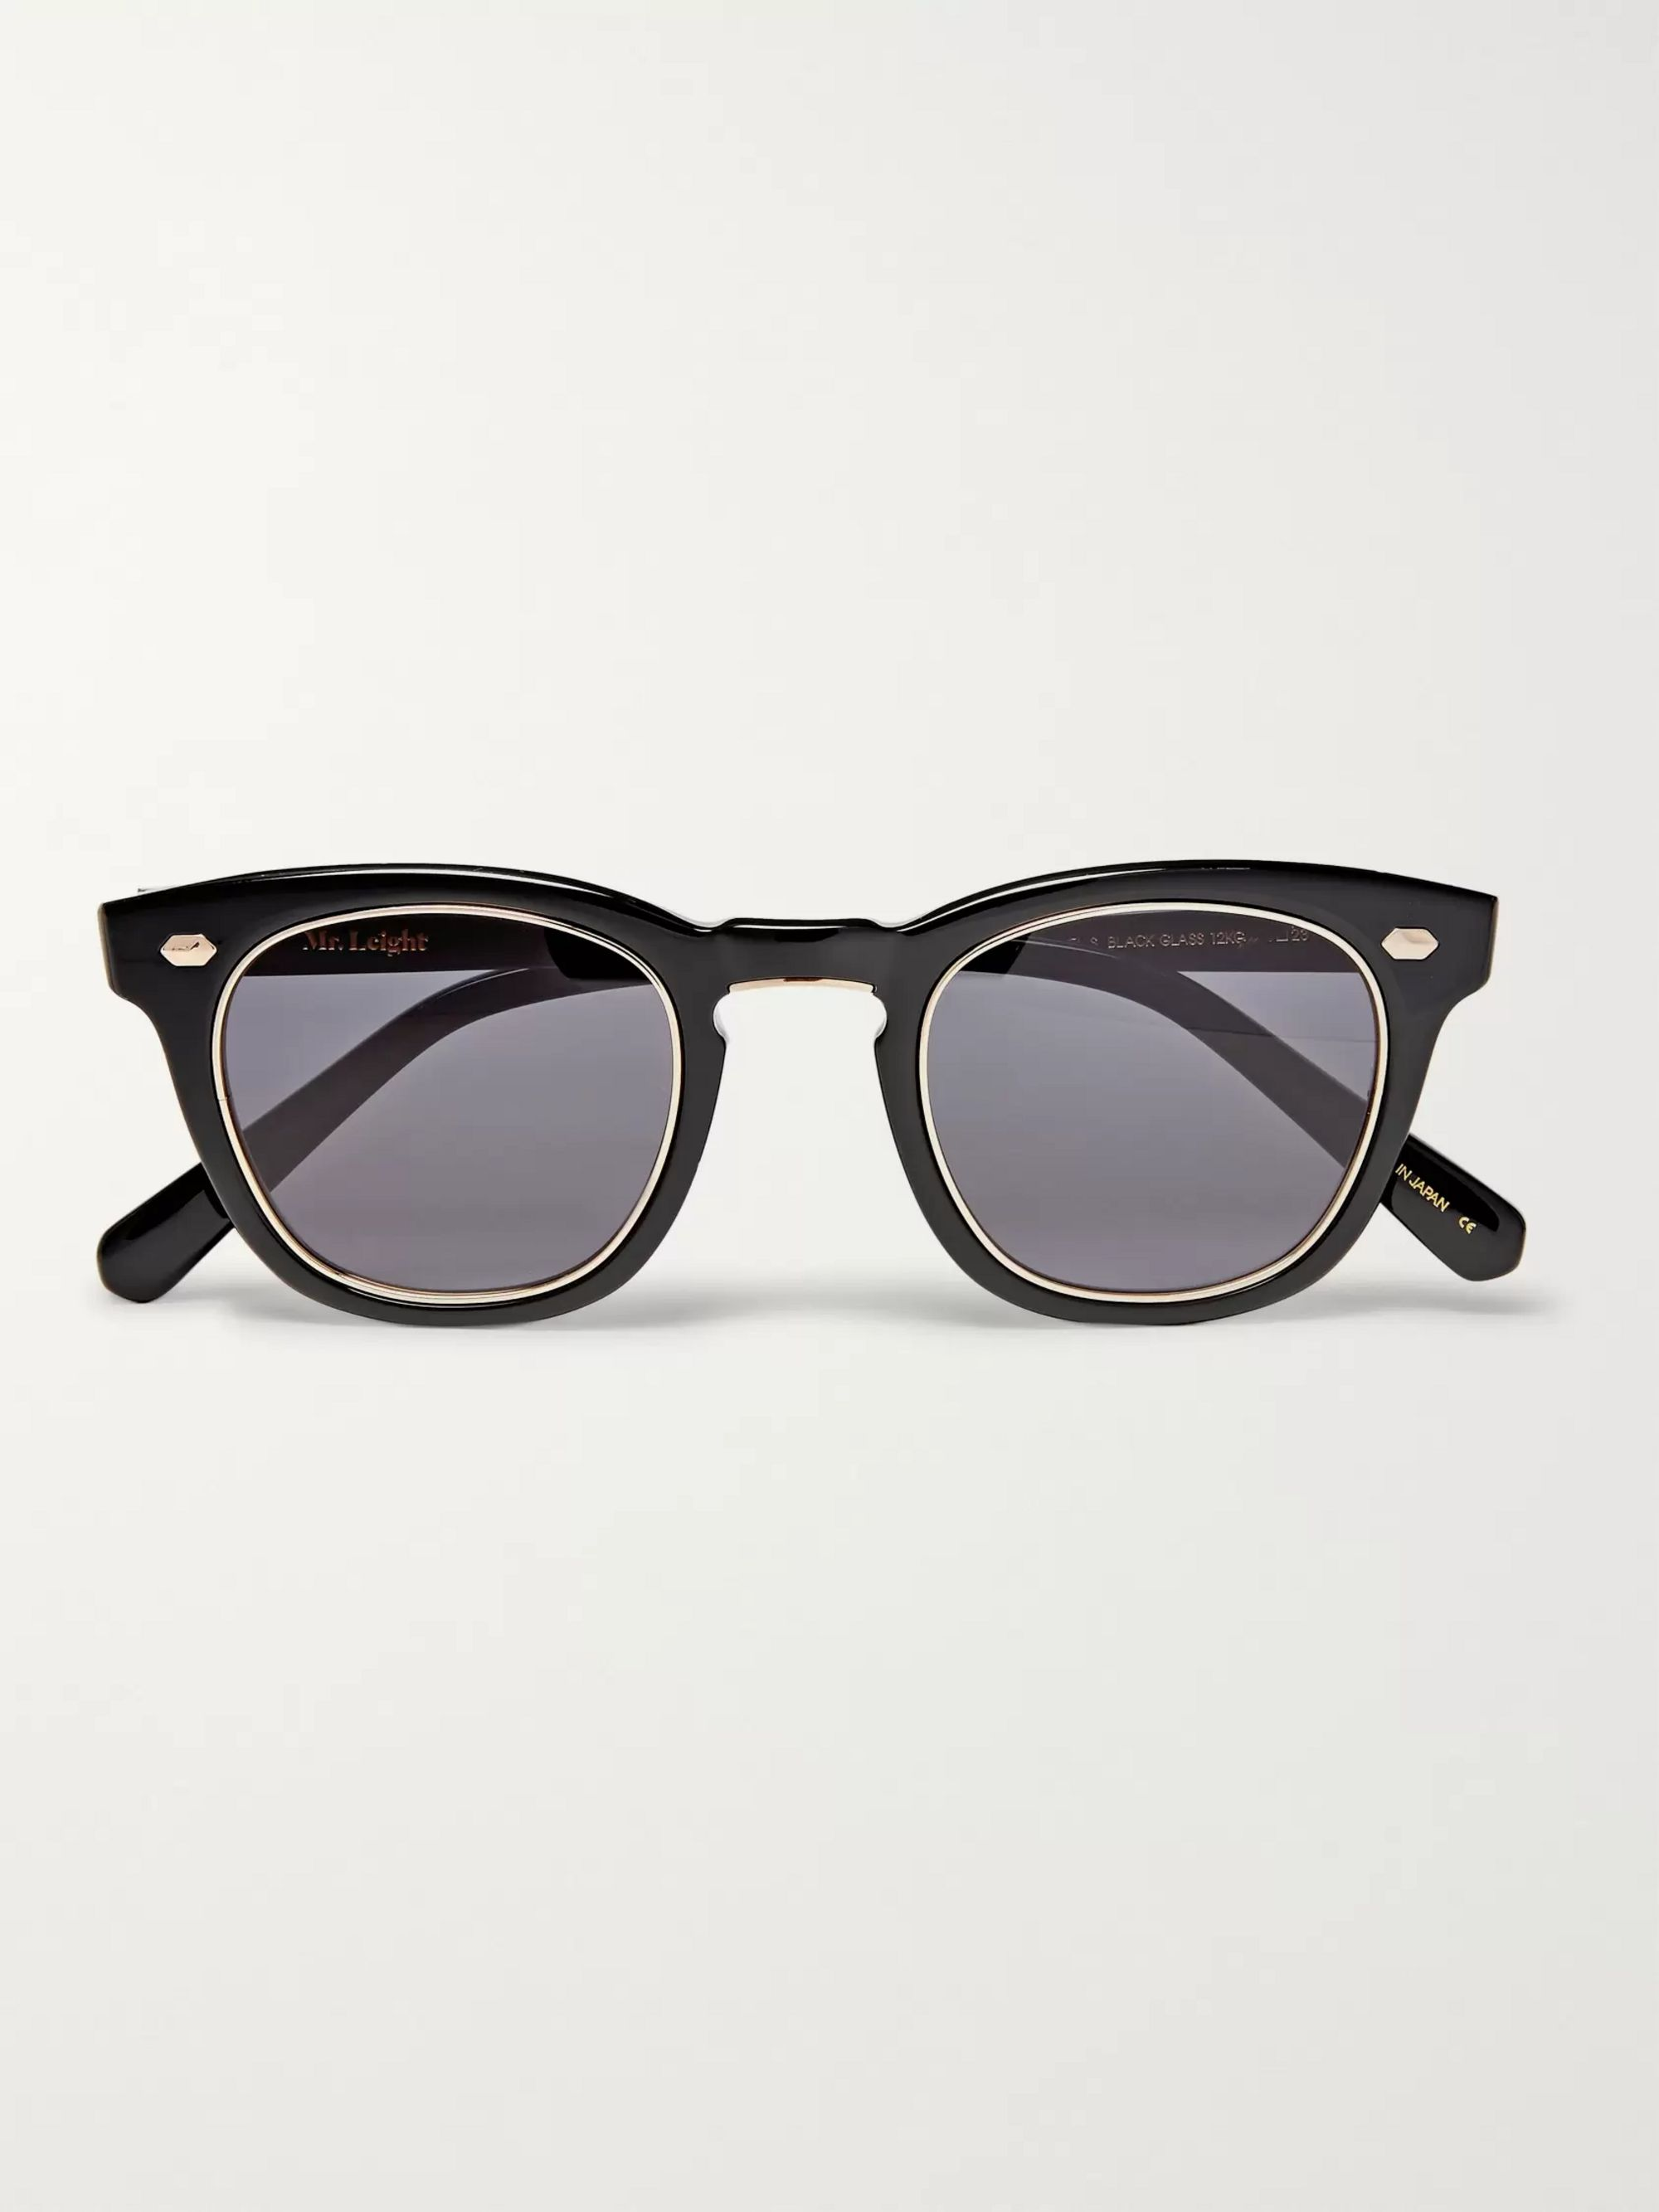 Mr Leight Hanalei S D-Frame Titanium and Acetate Sunglasses